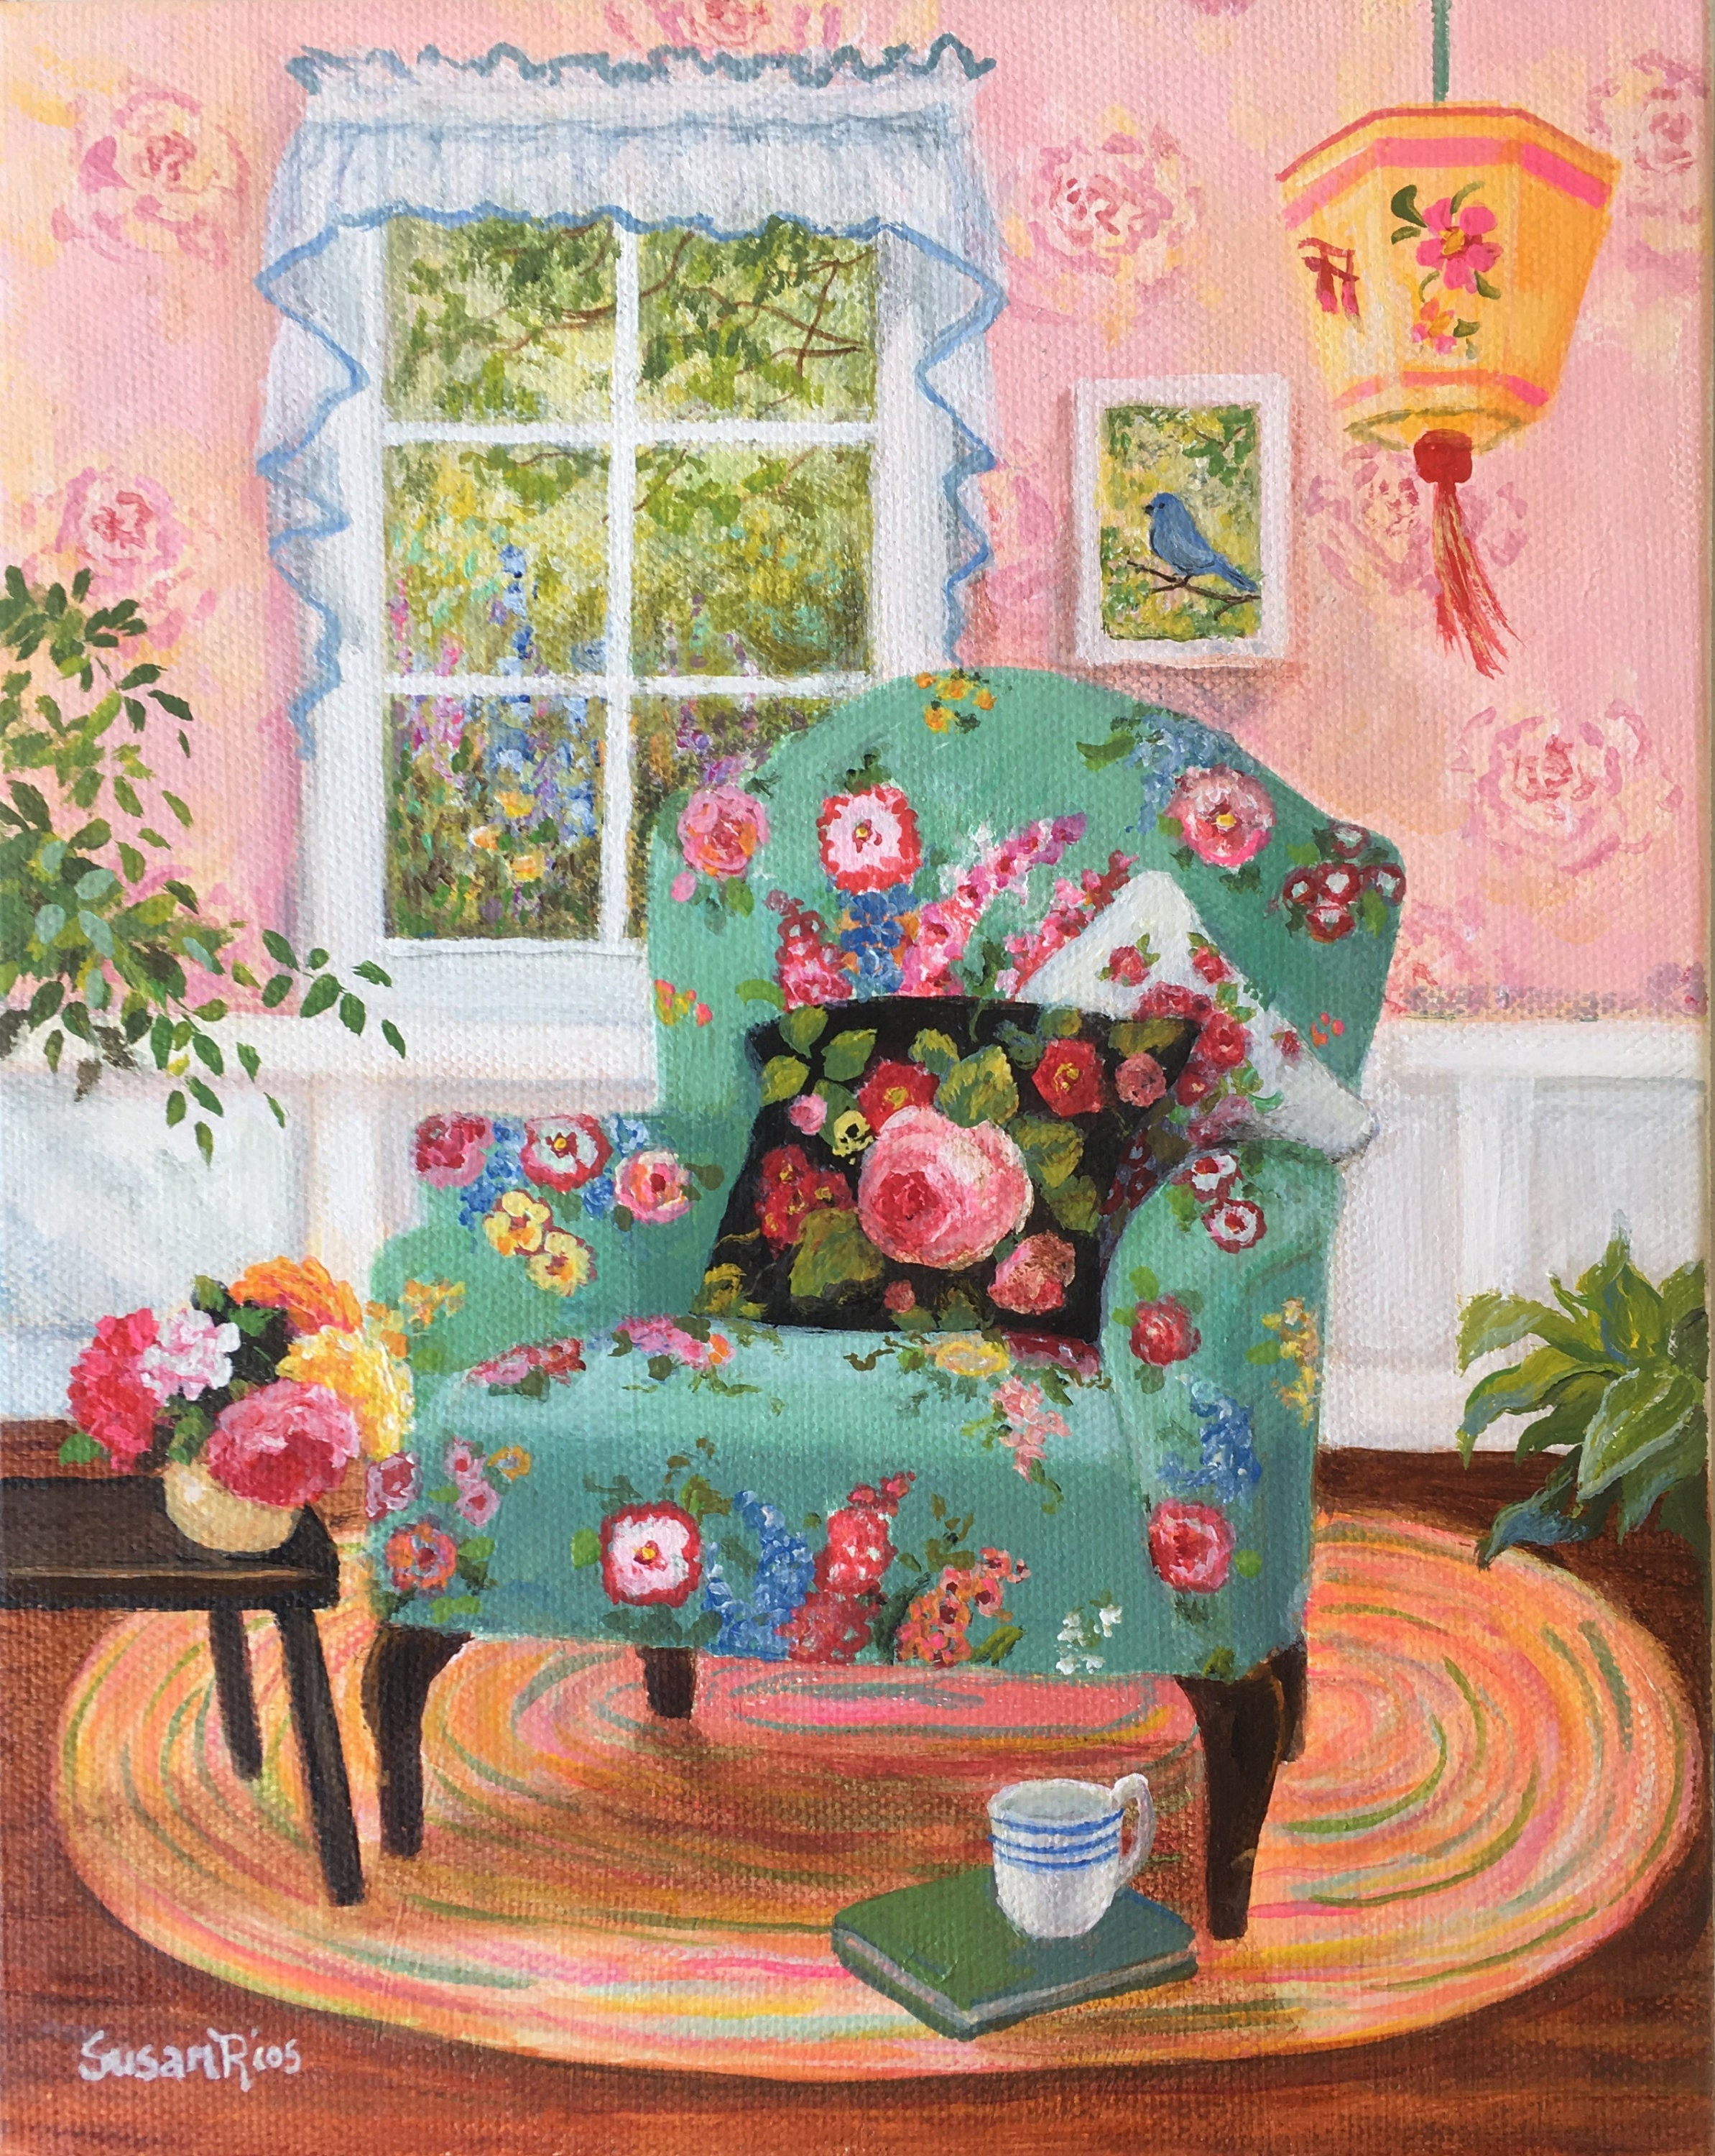 The Green Chair Floral Art Print Floral Chair Art Cottage Etsy - Decorative-floral-print-chairs-from-floral-art